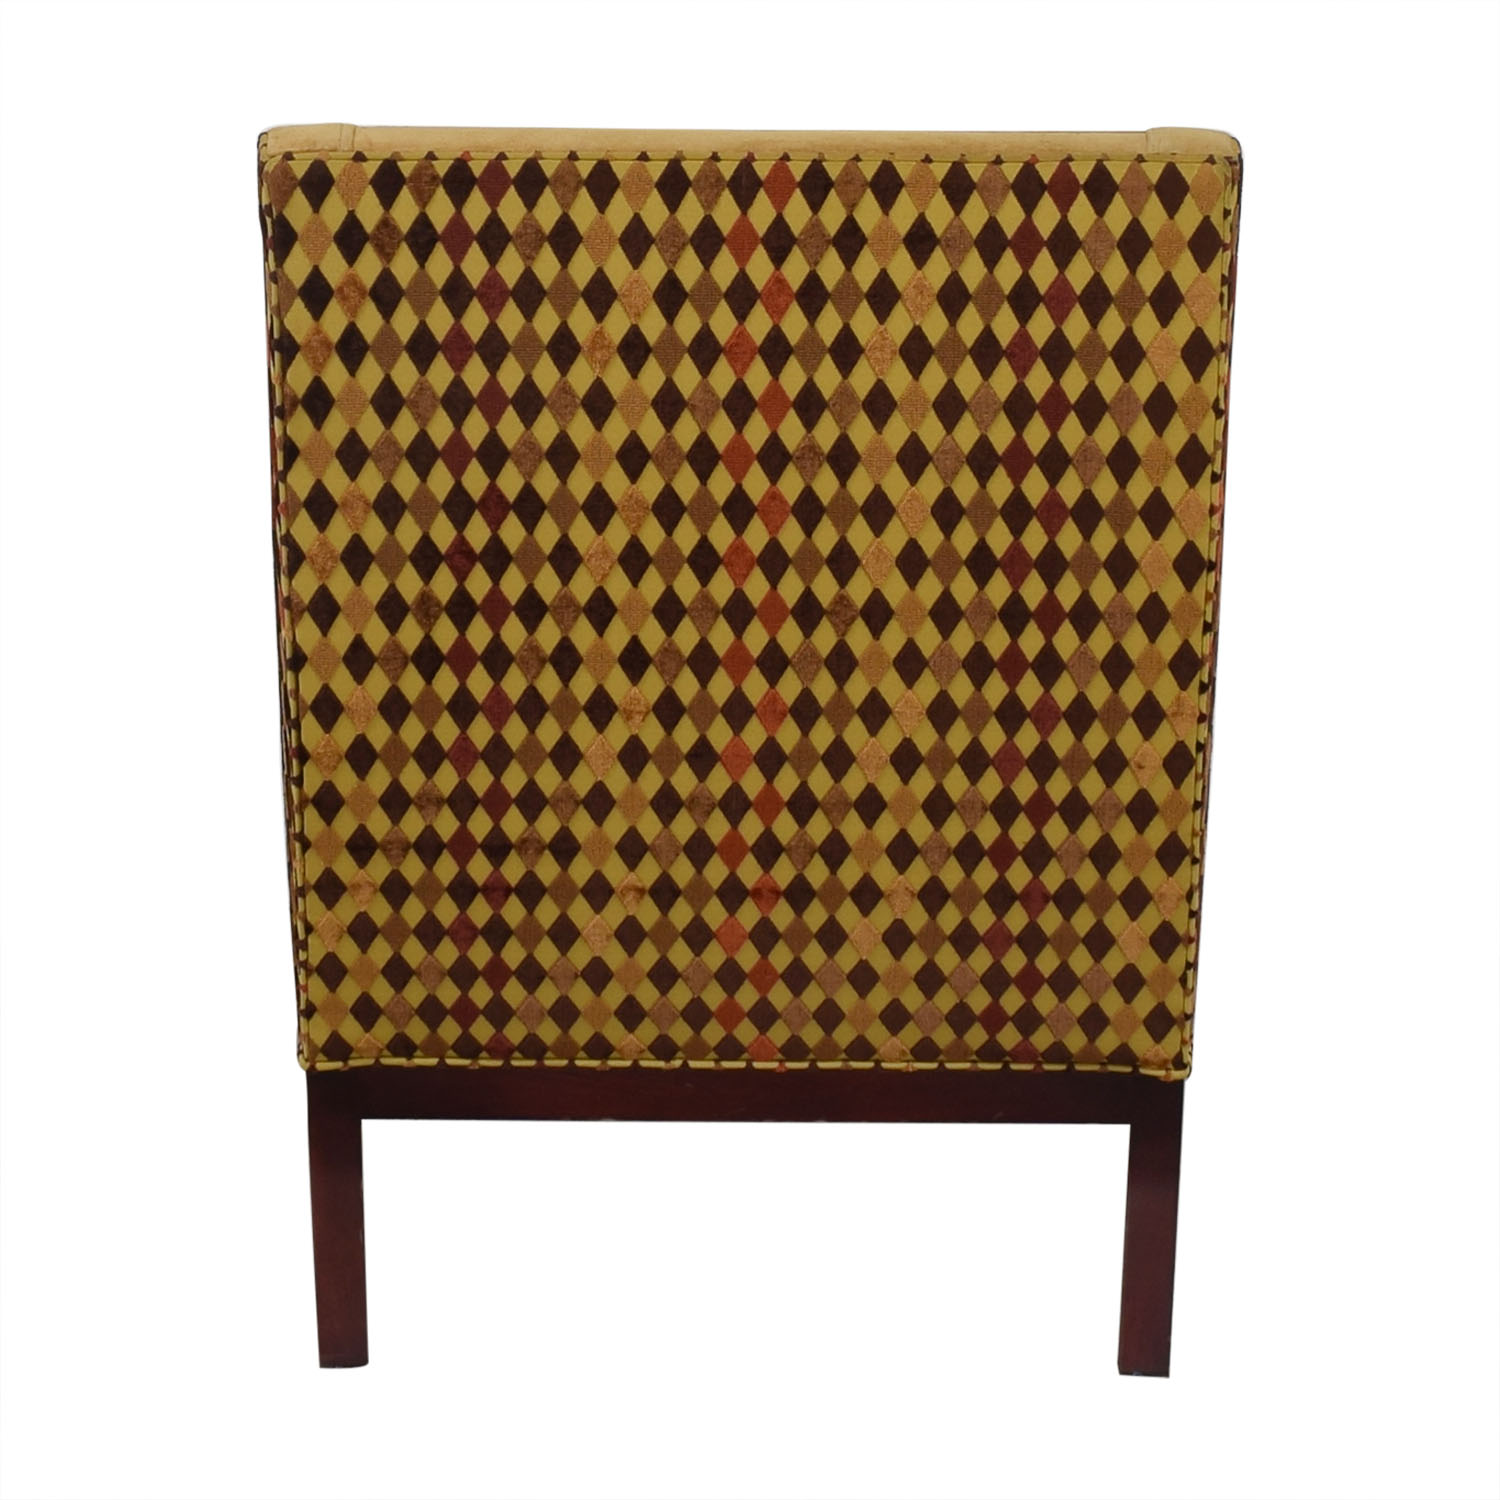 buy Stickley Mid Century Accent Chair Stickley Furniture Accent Chairs